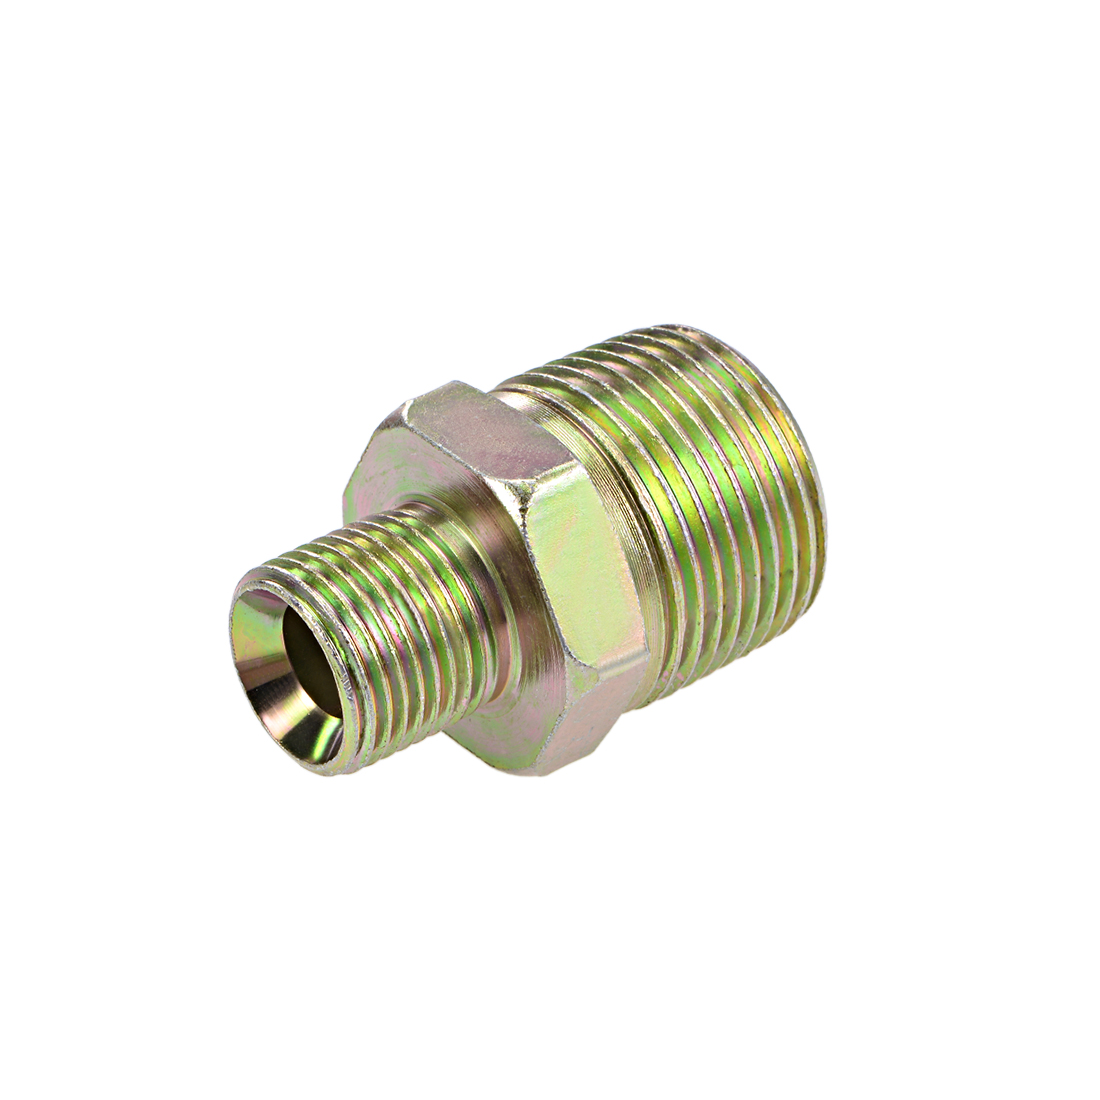 Reducing Pipe Fitting - Reducer Hex Nipple - 1 X 1/2 BSP Male Connector